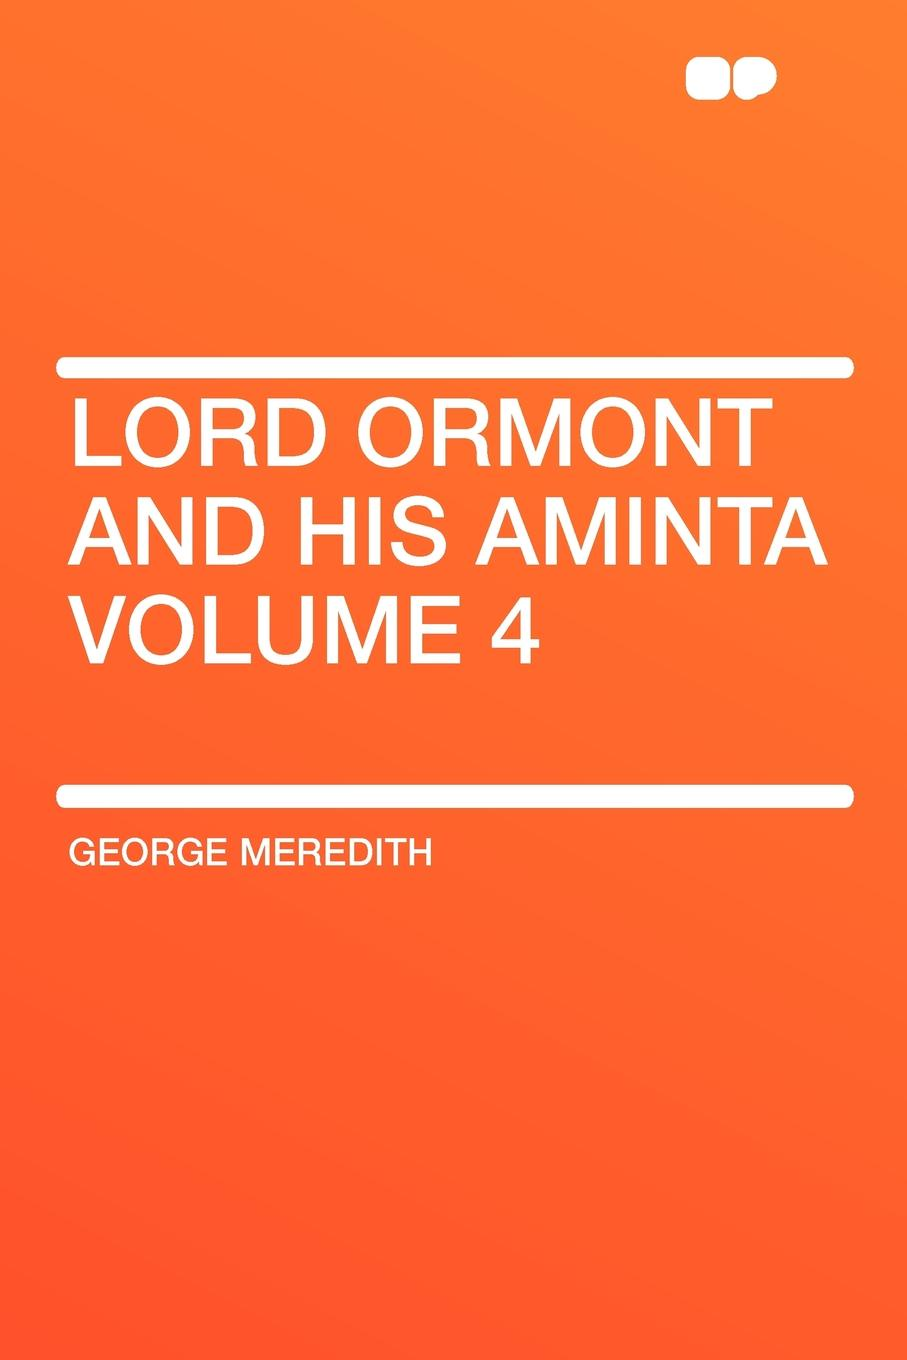 George Meredith Lord Ormont and His Aminta Volume 4 george meredith lord ormont and his aminta complete